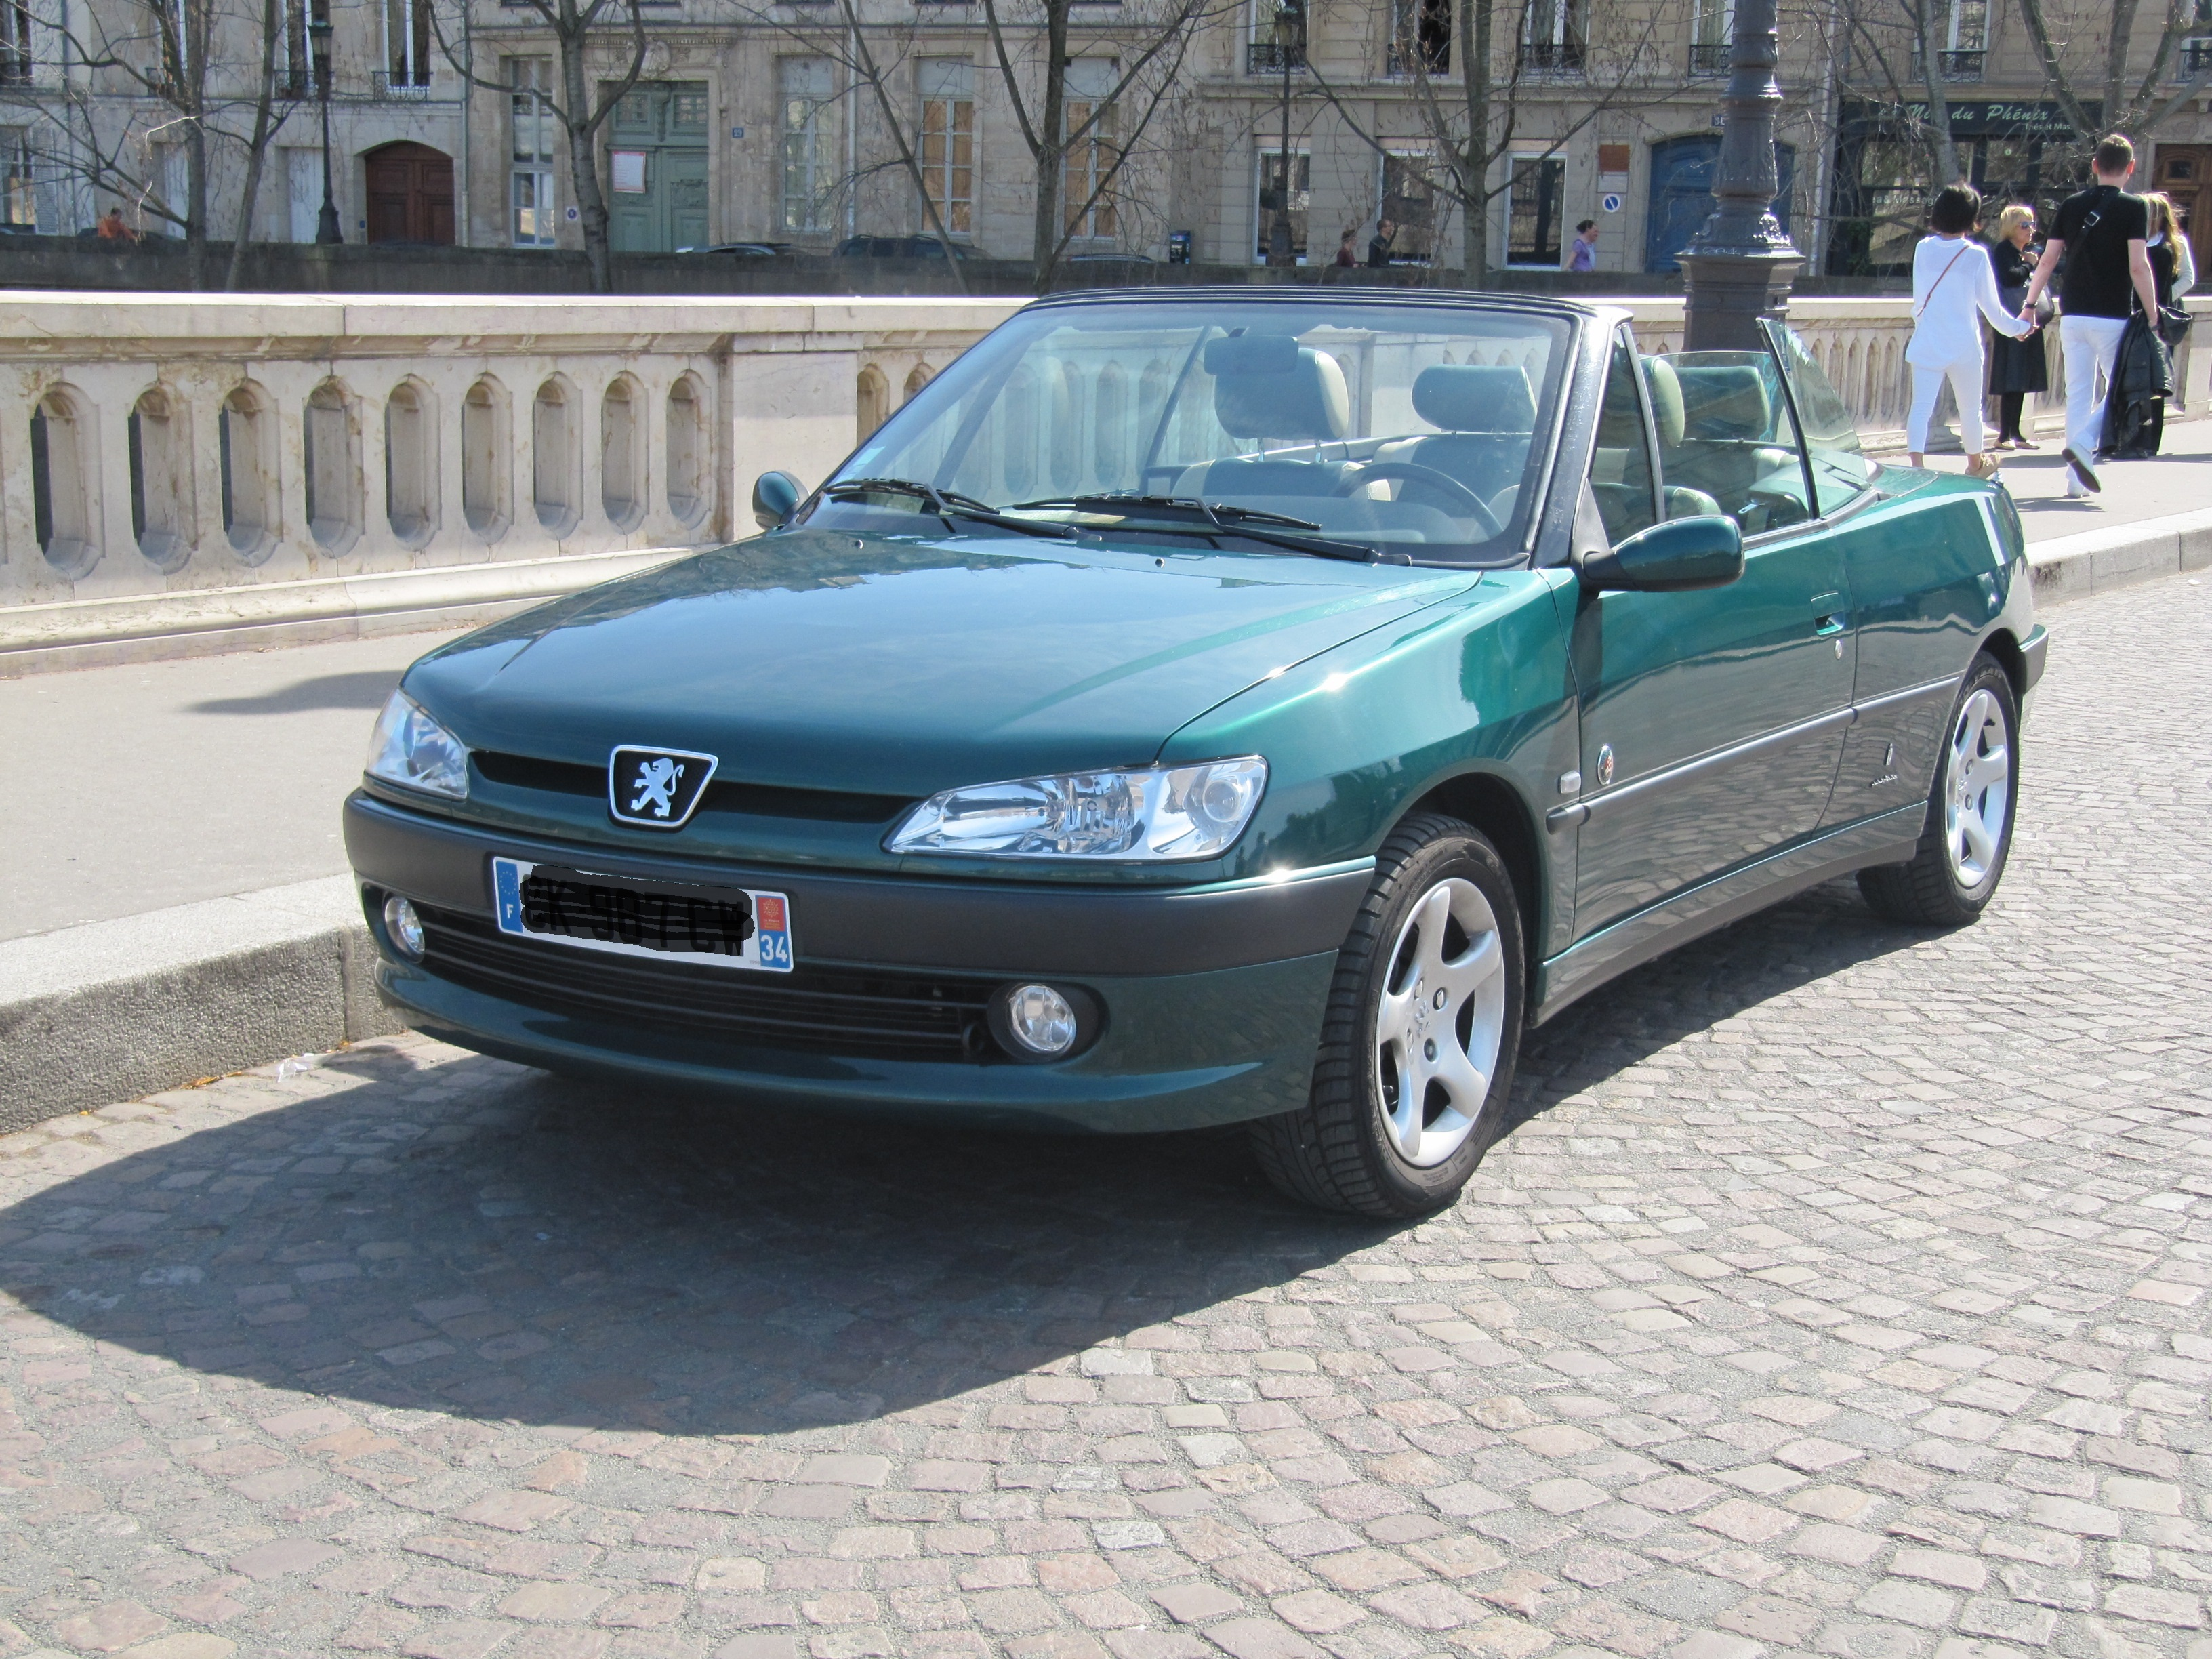 fichier peugeot 306 cabriolet roland garros 2001 jpg wikip dia. Black Bedroom Furniture Sets. Home Design Ideas